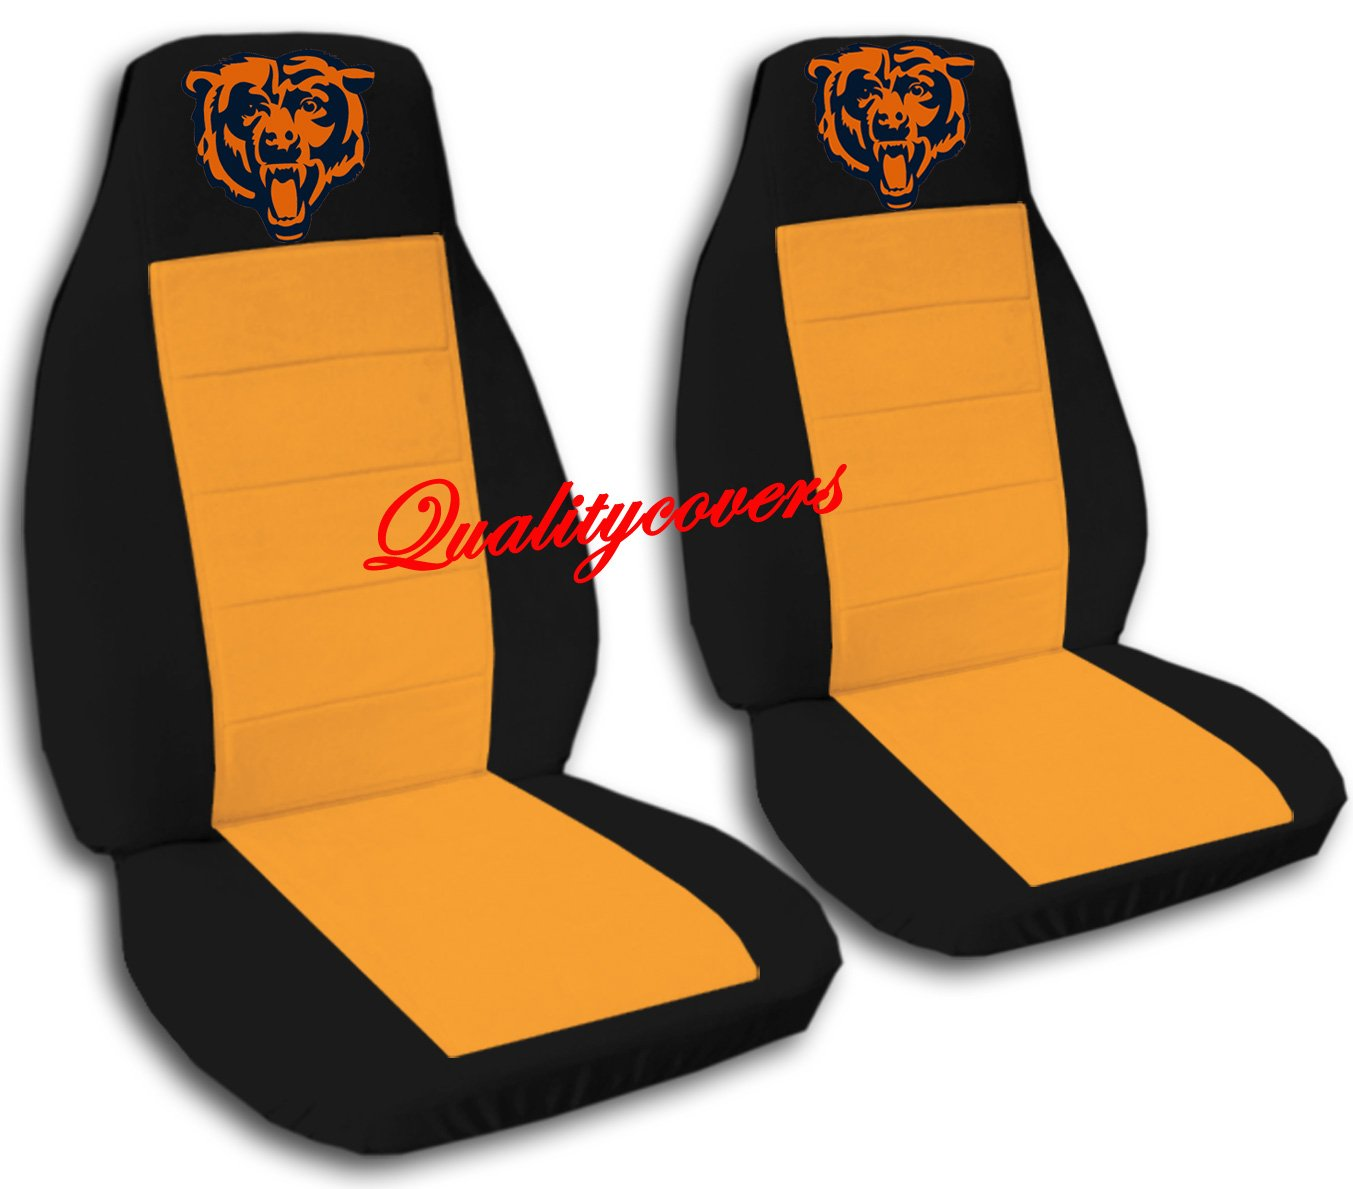 2 Black and Orange Chicago seat covers for a 2007 to 2012 Chevrolet Silverado. Side airbag friendly.